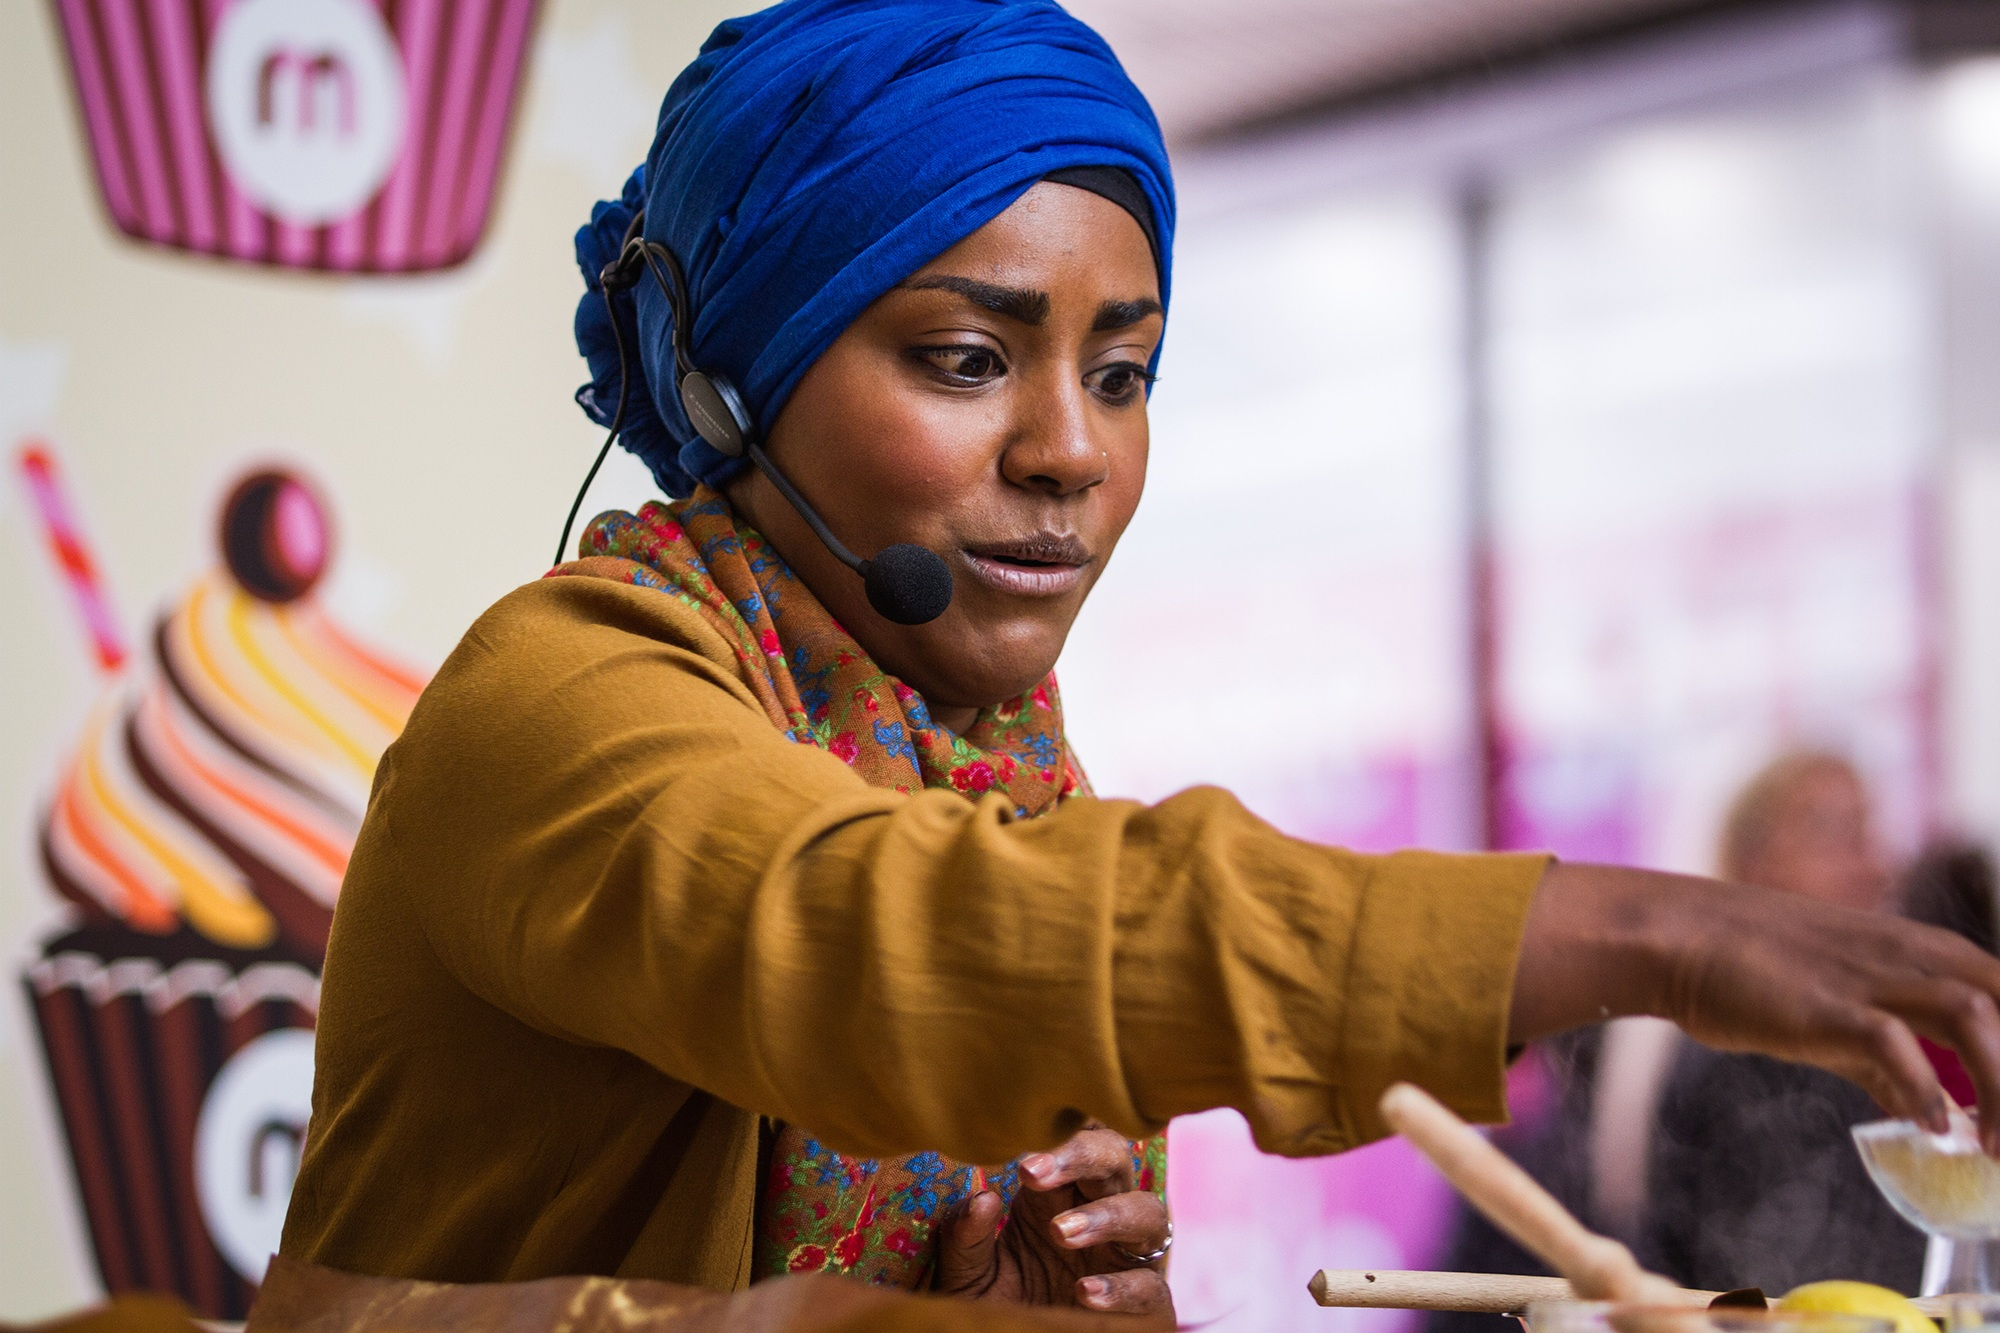 Naidya Hussein, winner of Great British Bake off photographed by Jessie Leong